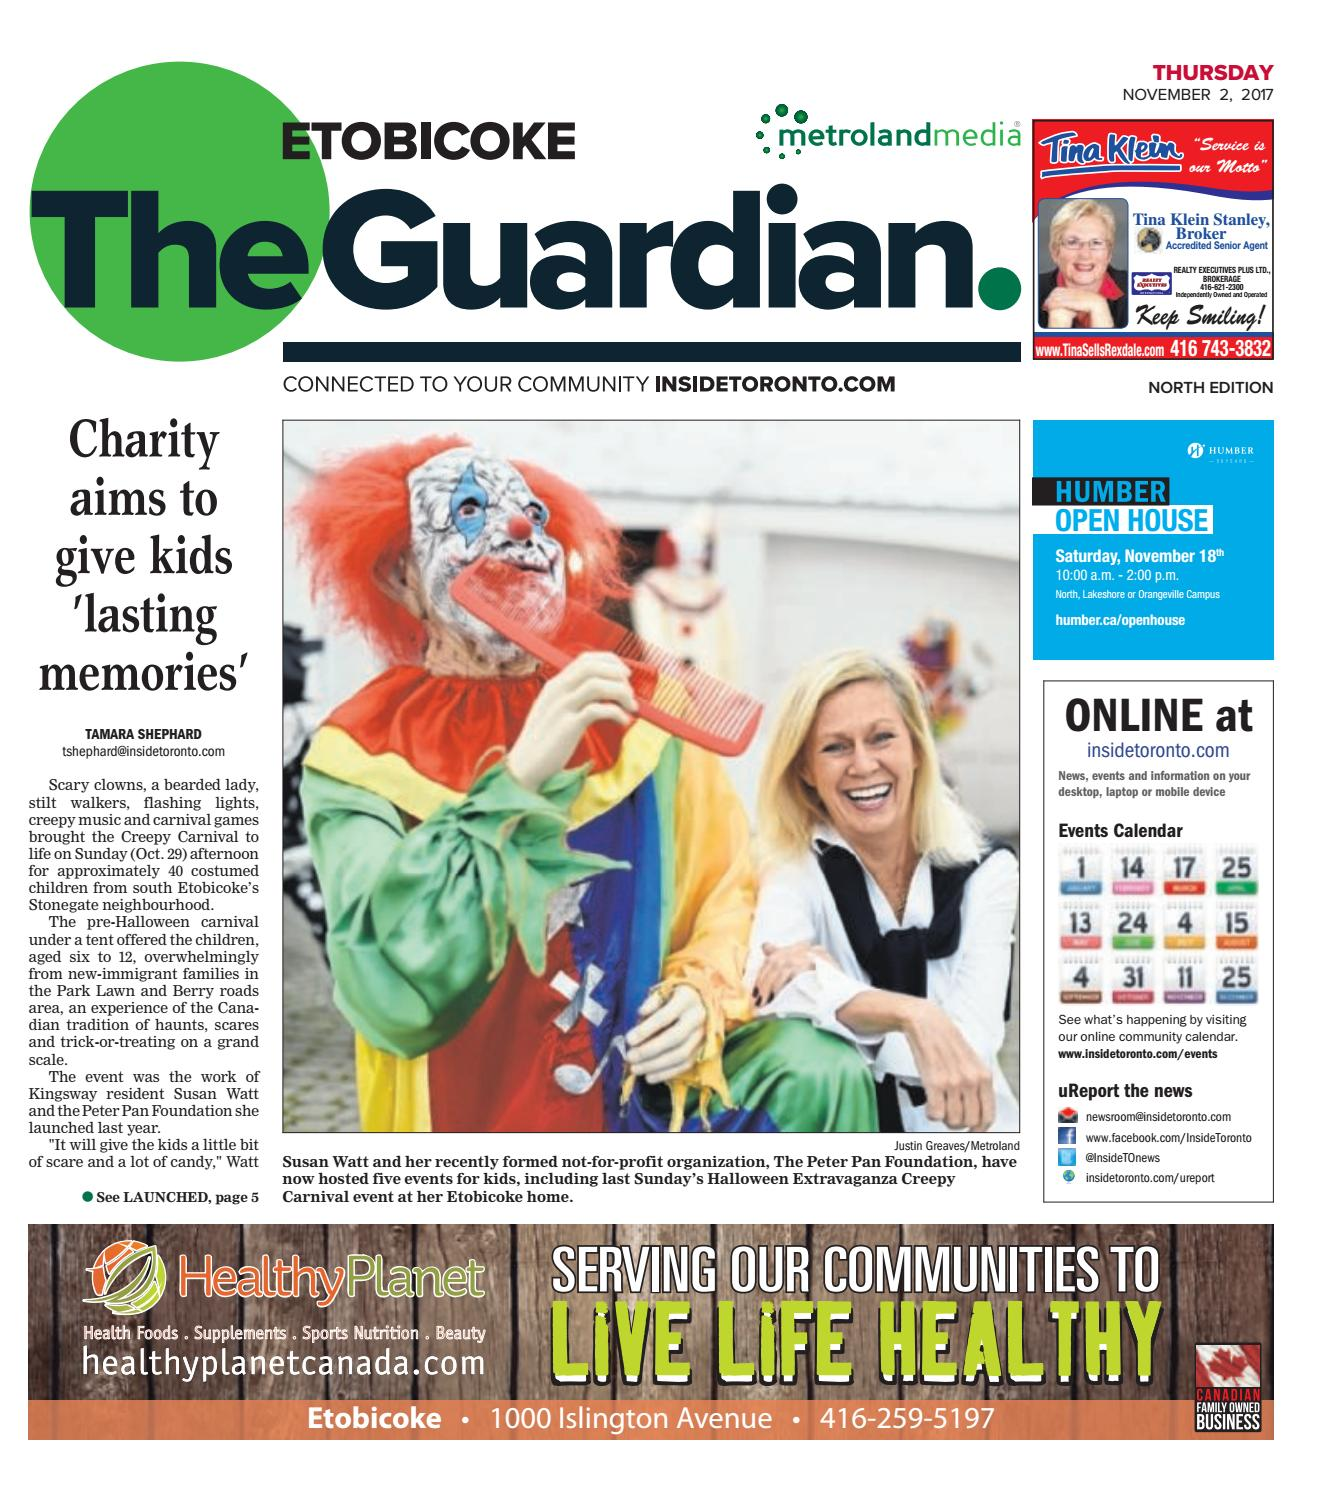 Carnival Ii Memoirs Of An Immigrant: The Etobicoke Guardian, North, November 2, 2017 By The